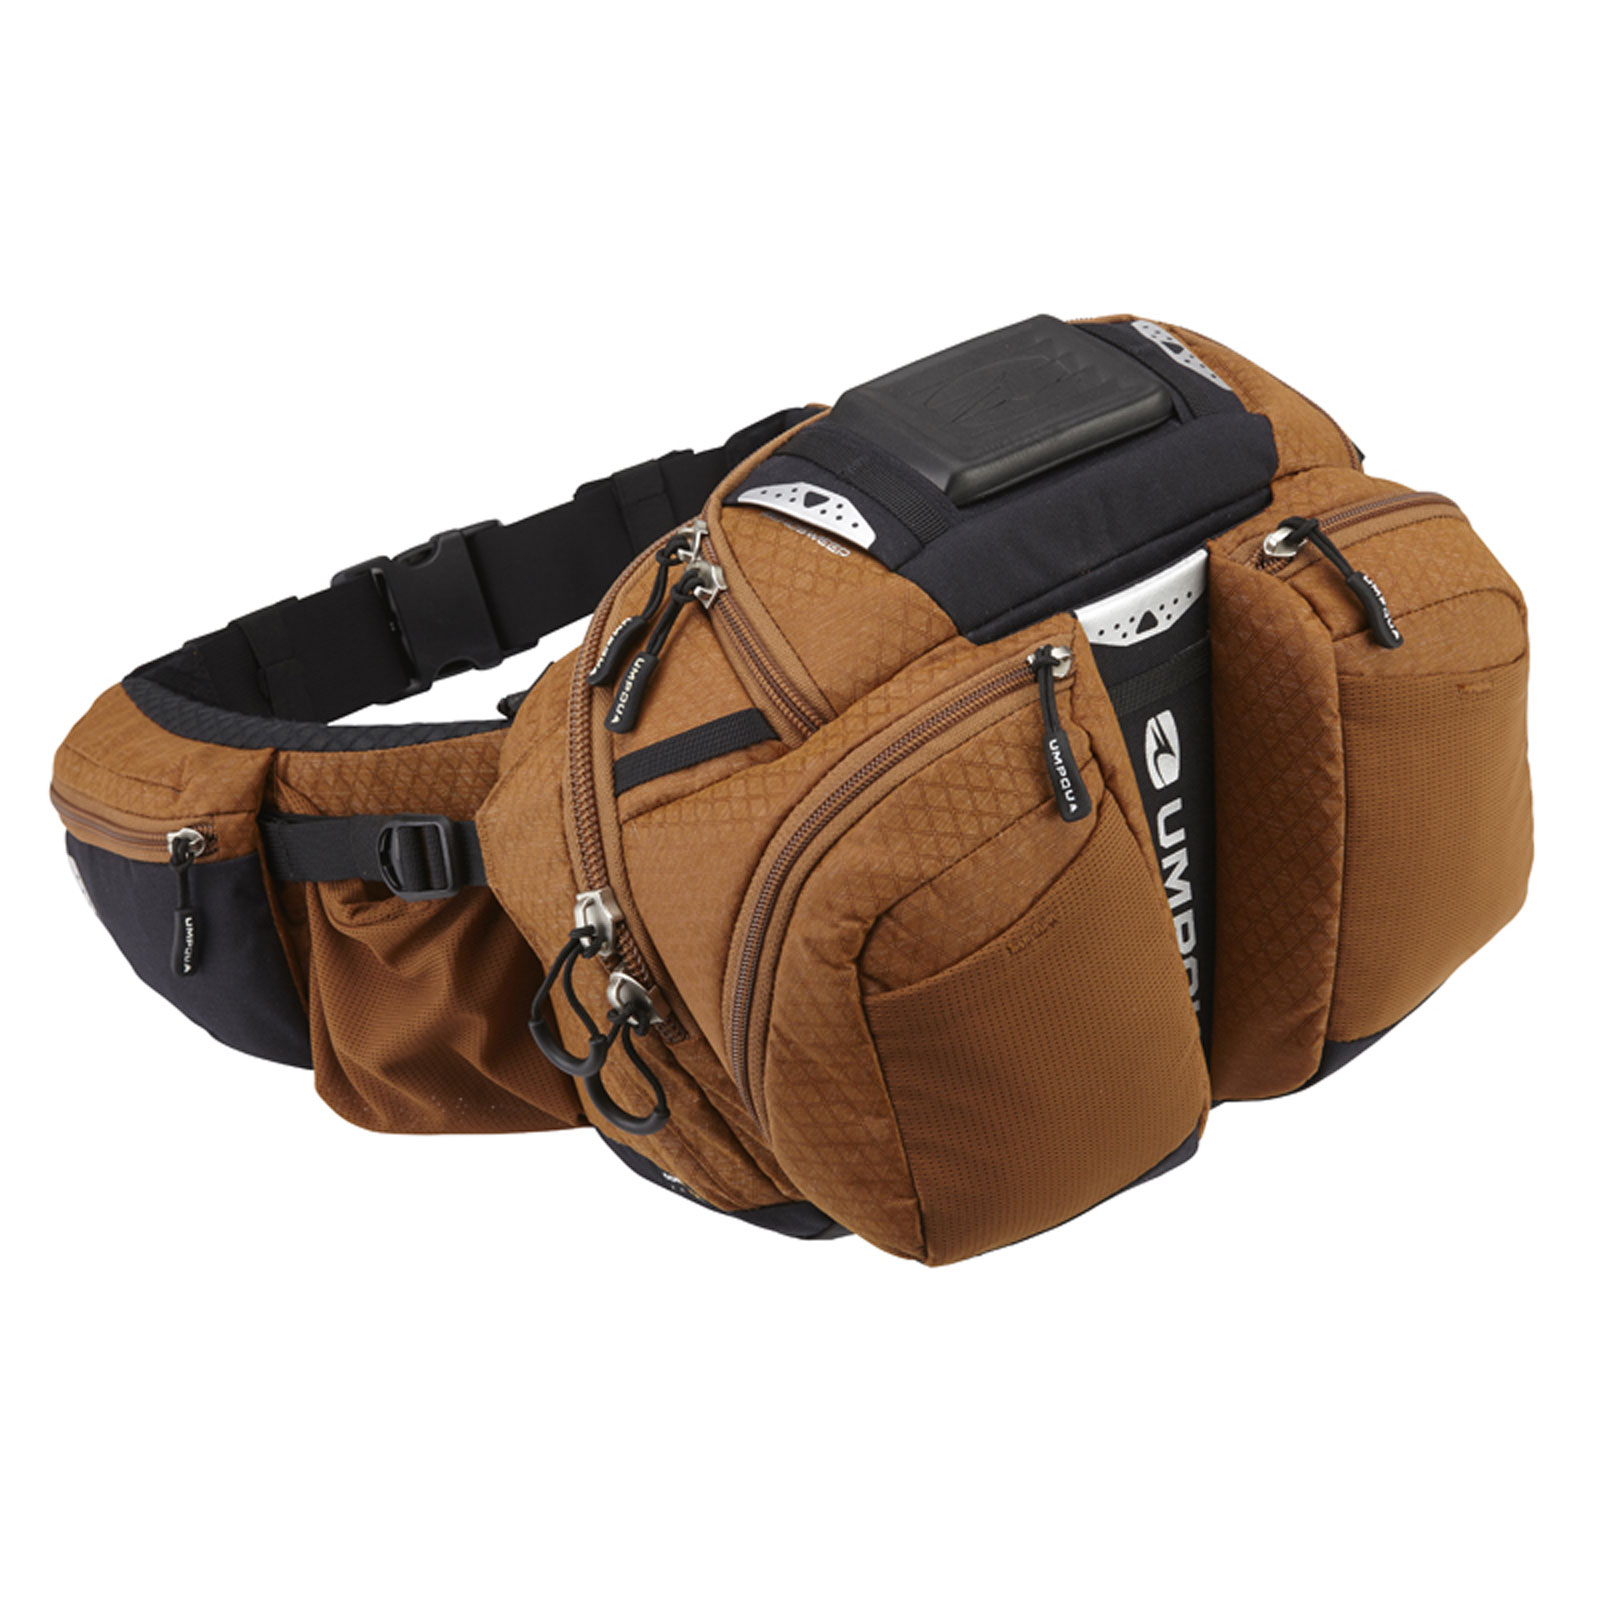 UMPQUA Ledges 650 ZS Zero Sweep™ Waist Pack Fly Fishing T...